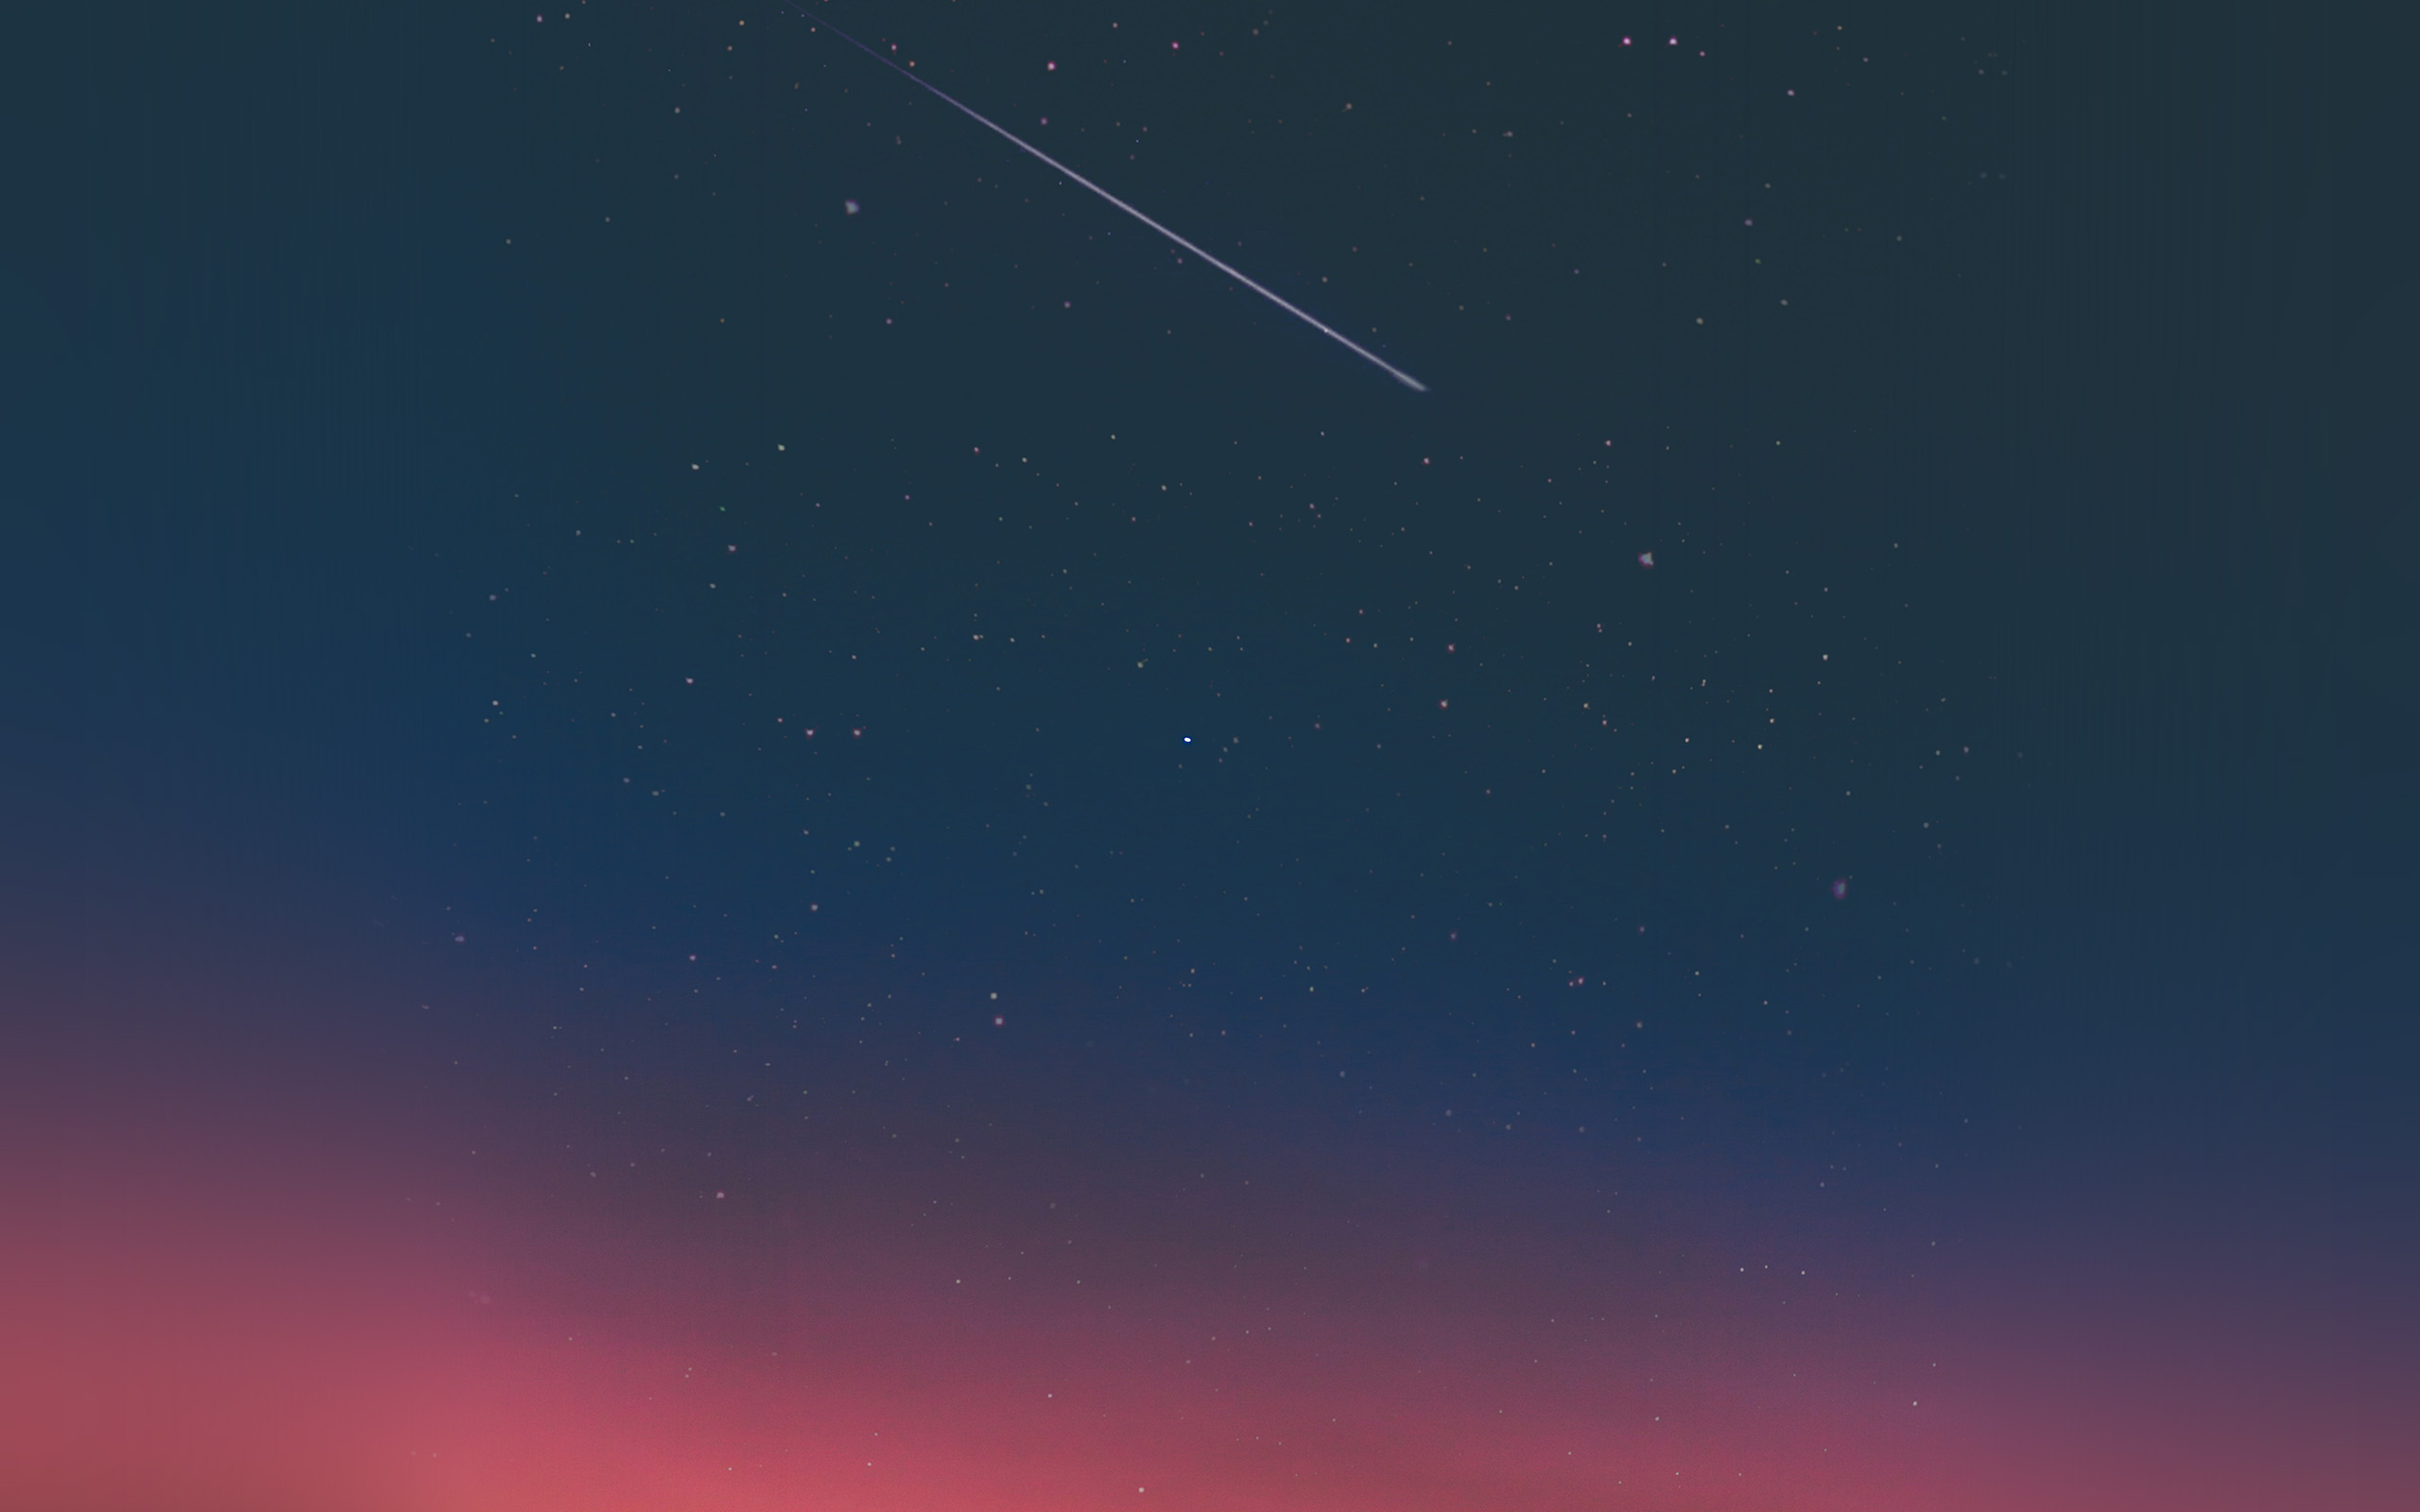 Cute Pink Wallpapers For Android Nw35 Sky Sunset Night Blue Nature Wallpaper